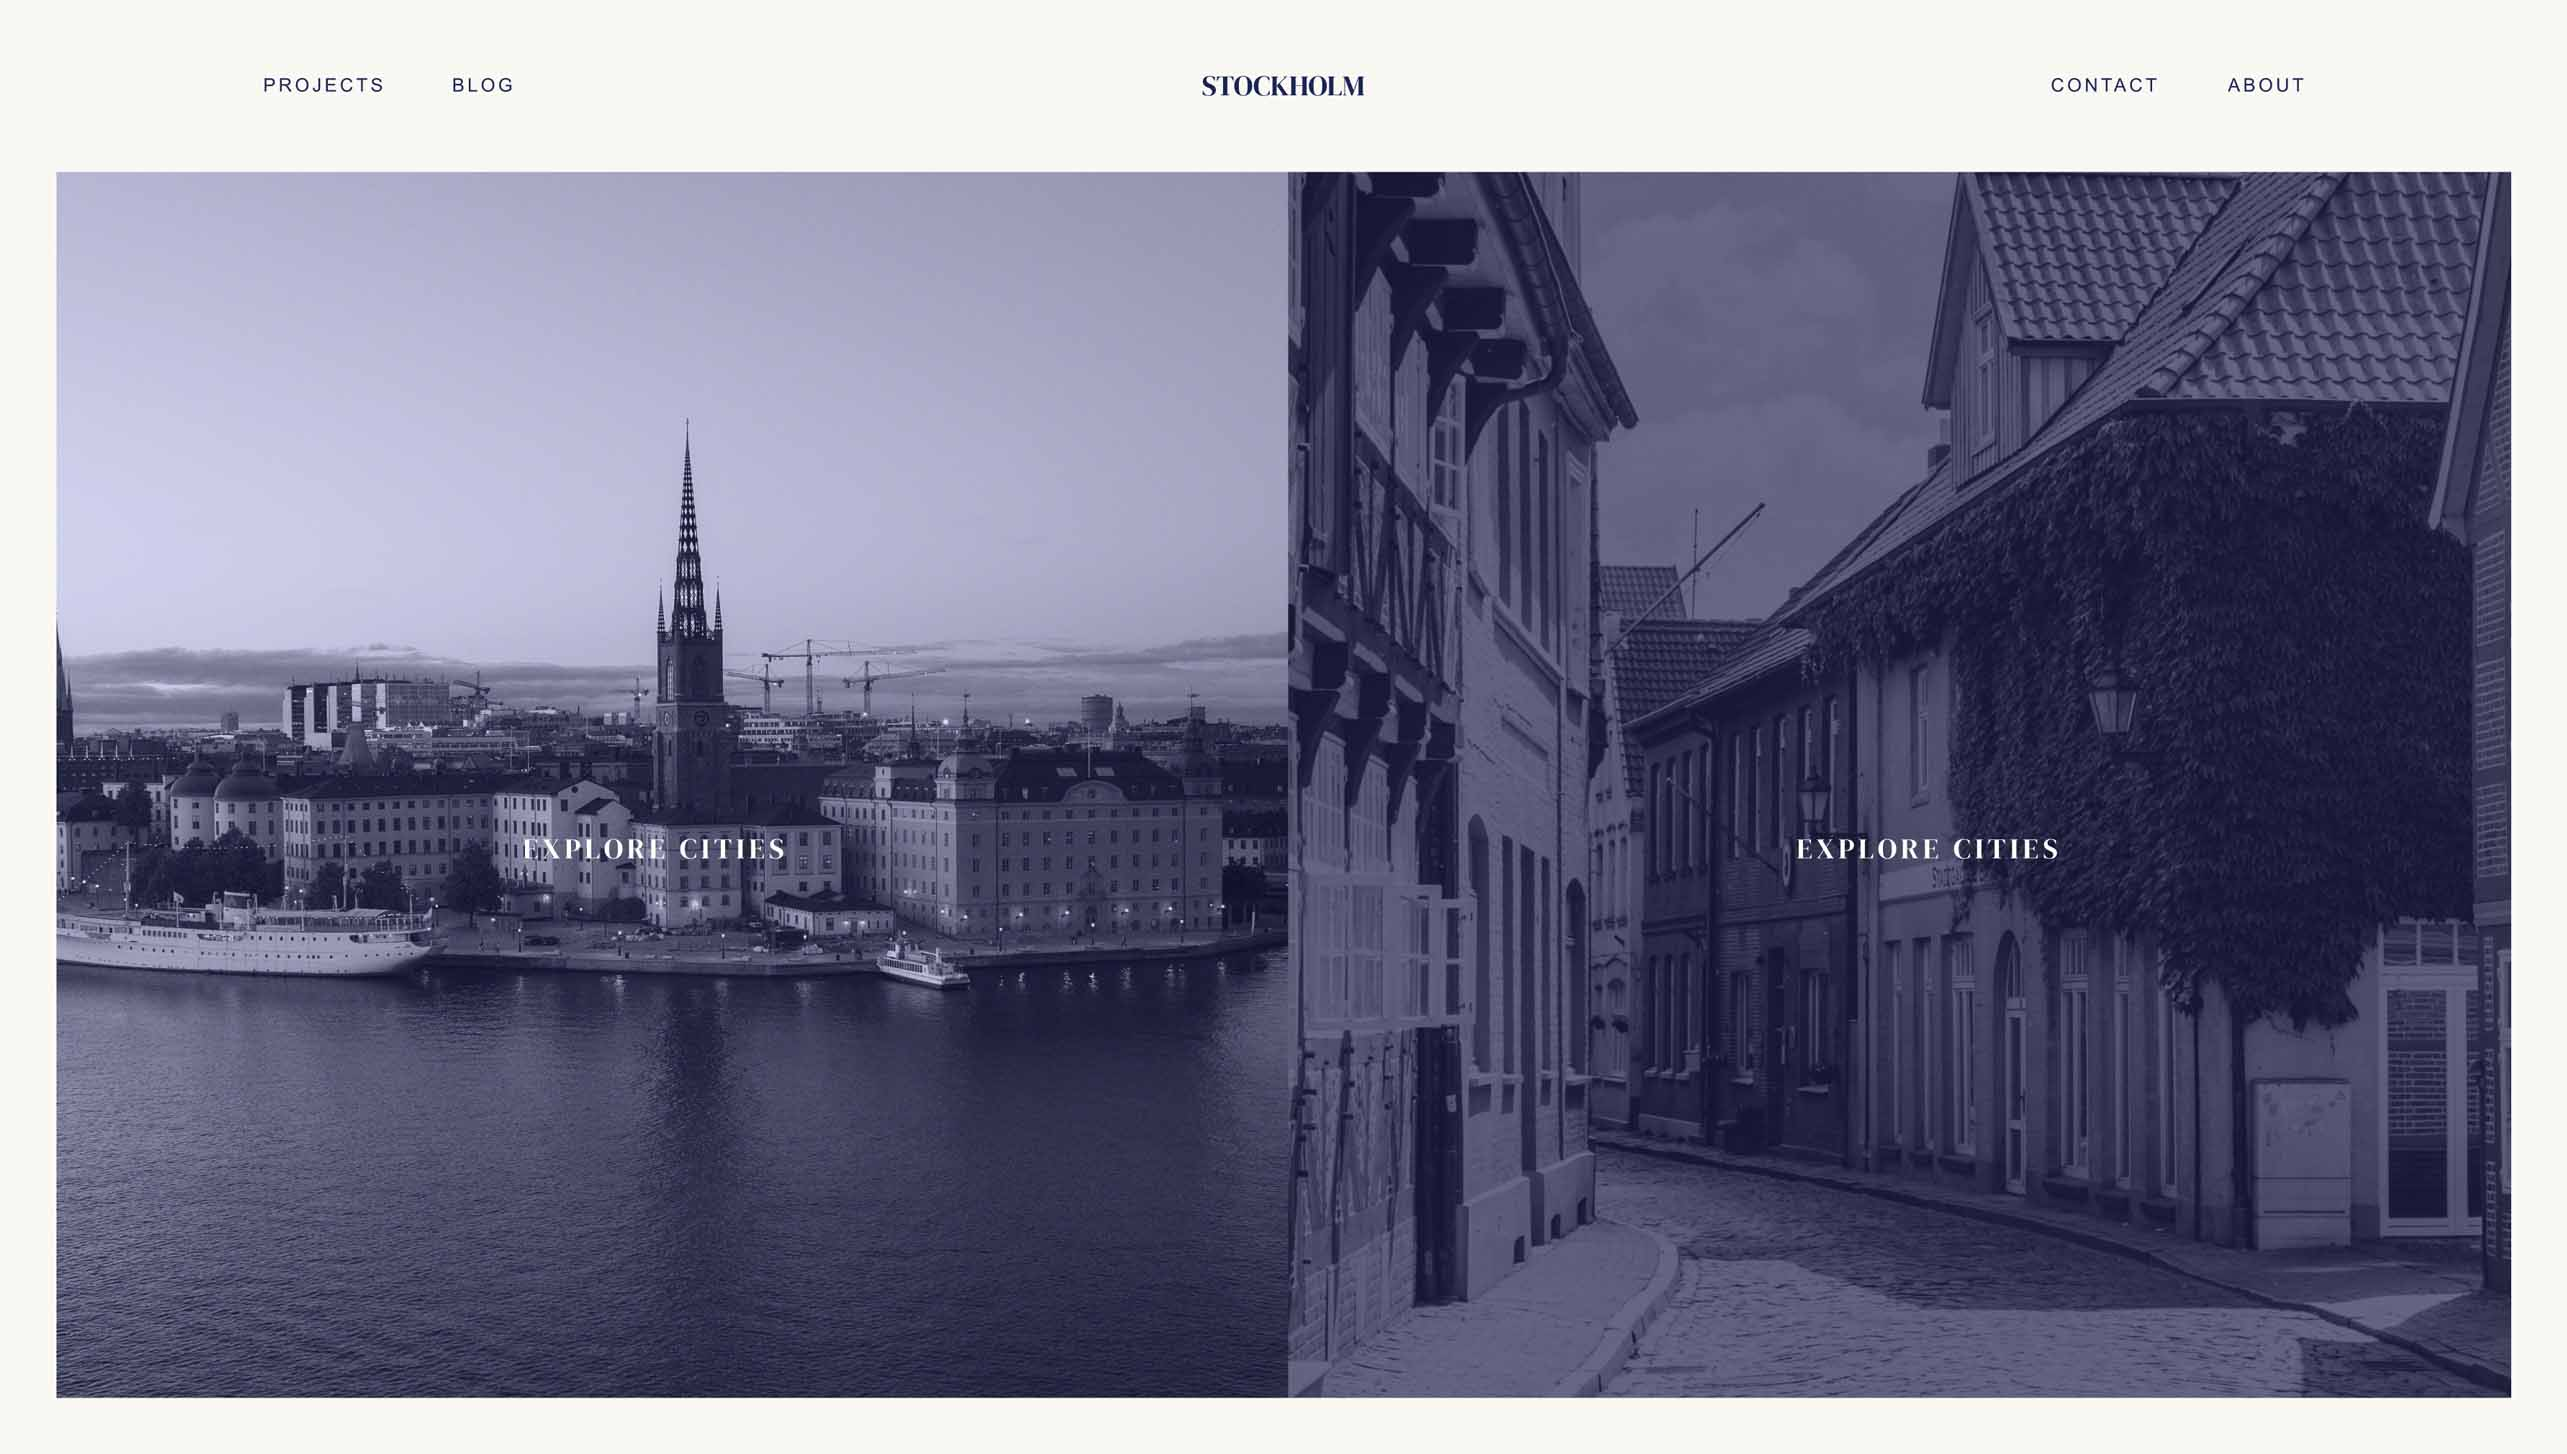 Screenshot of Stockholm website